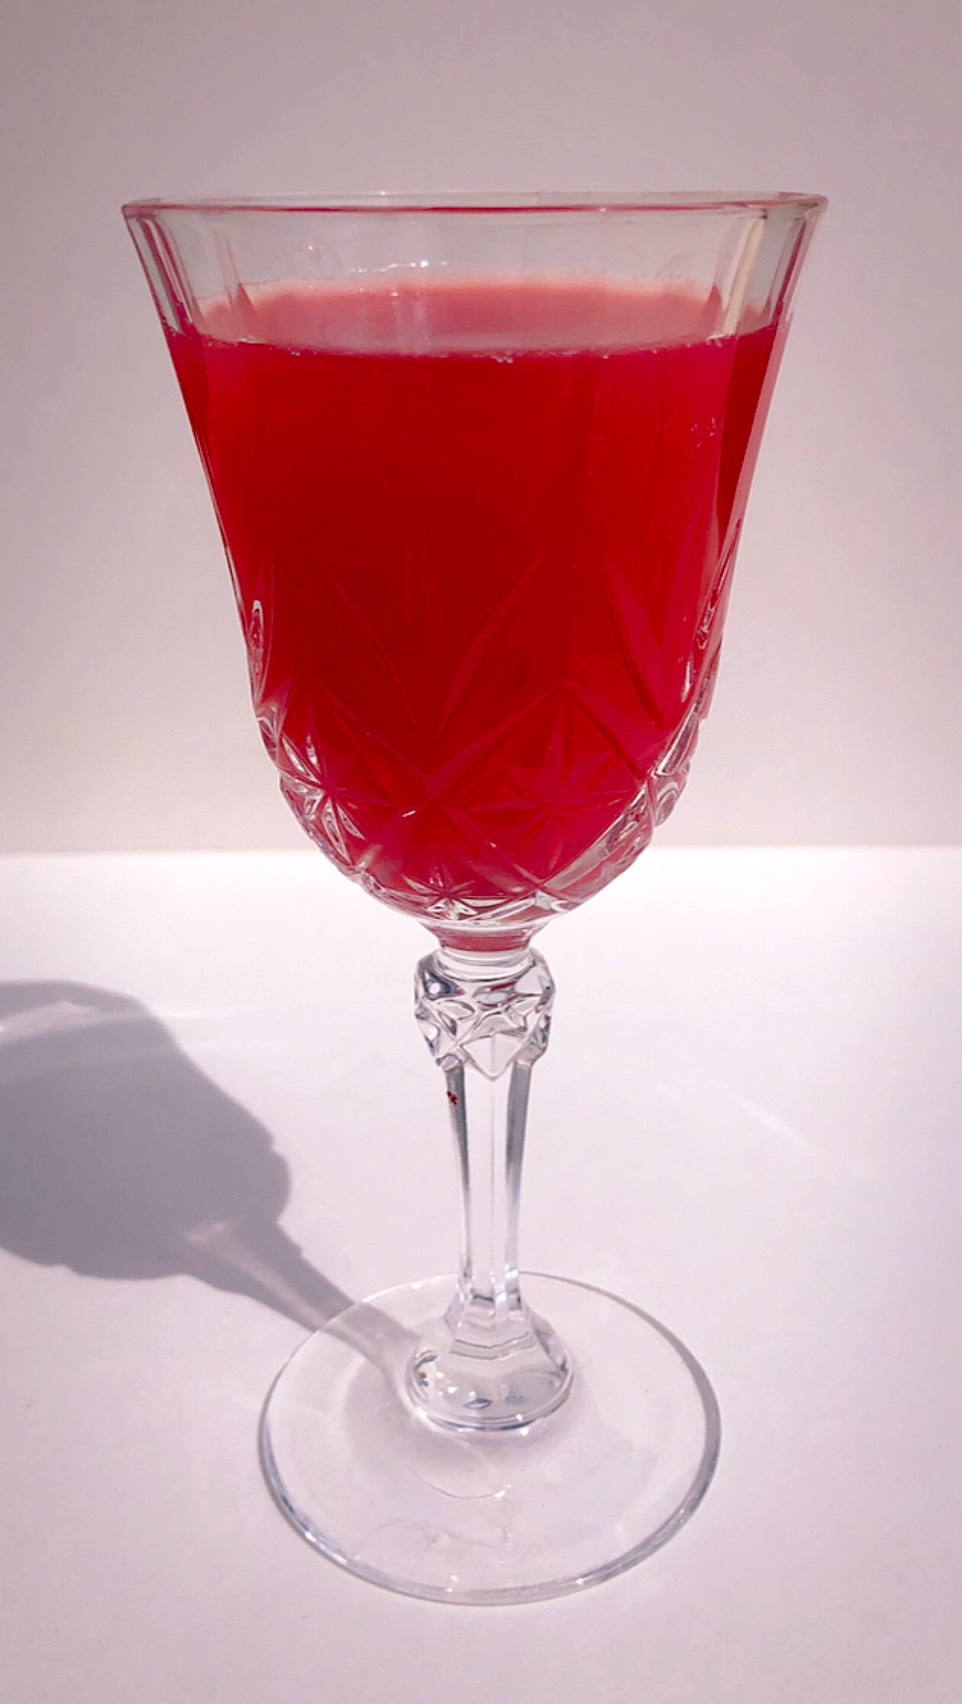 pomegranate_wine